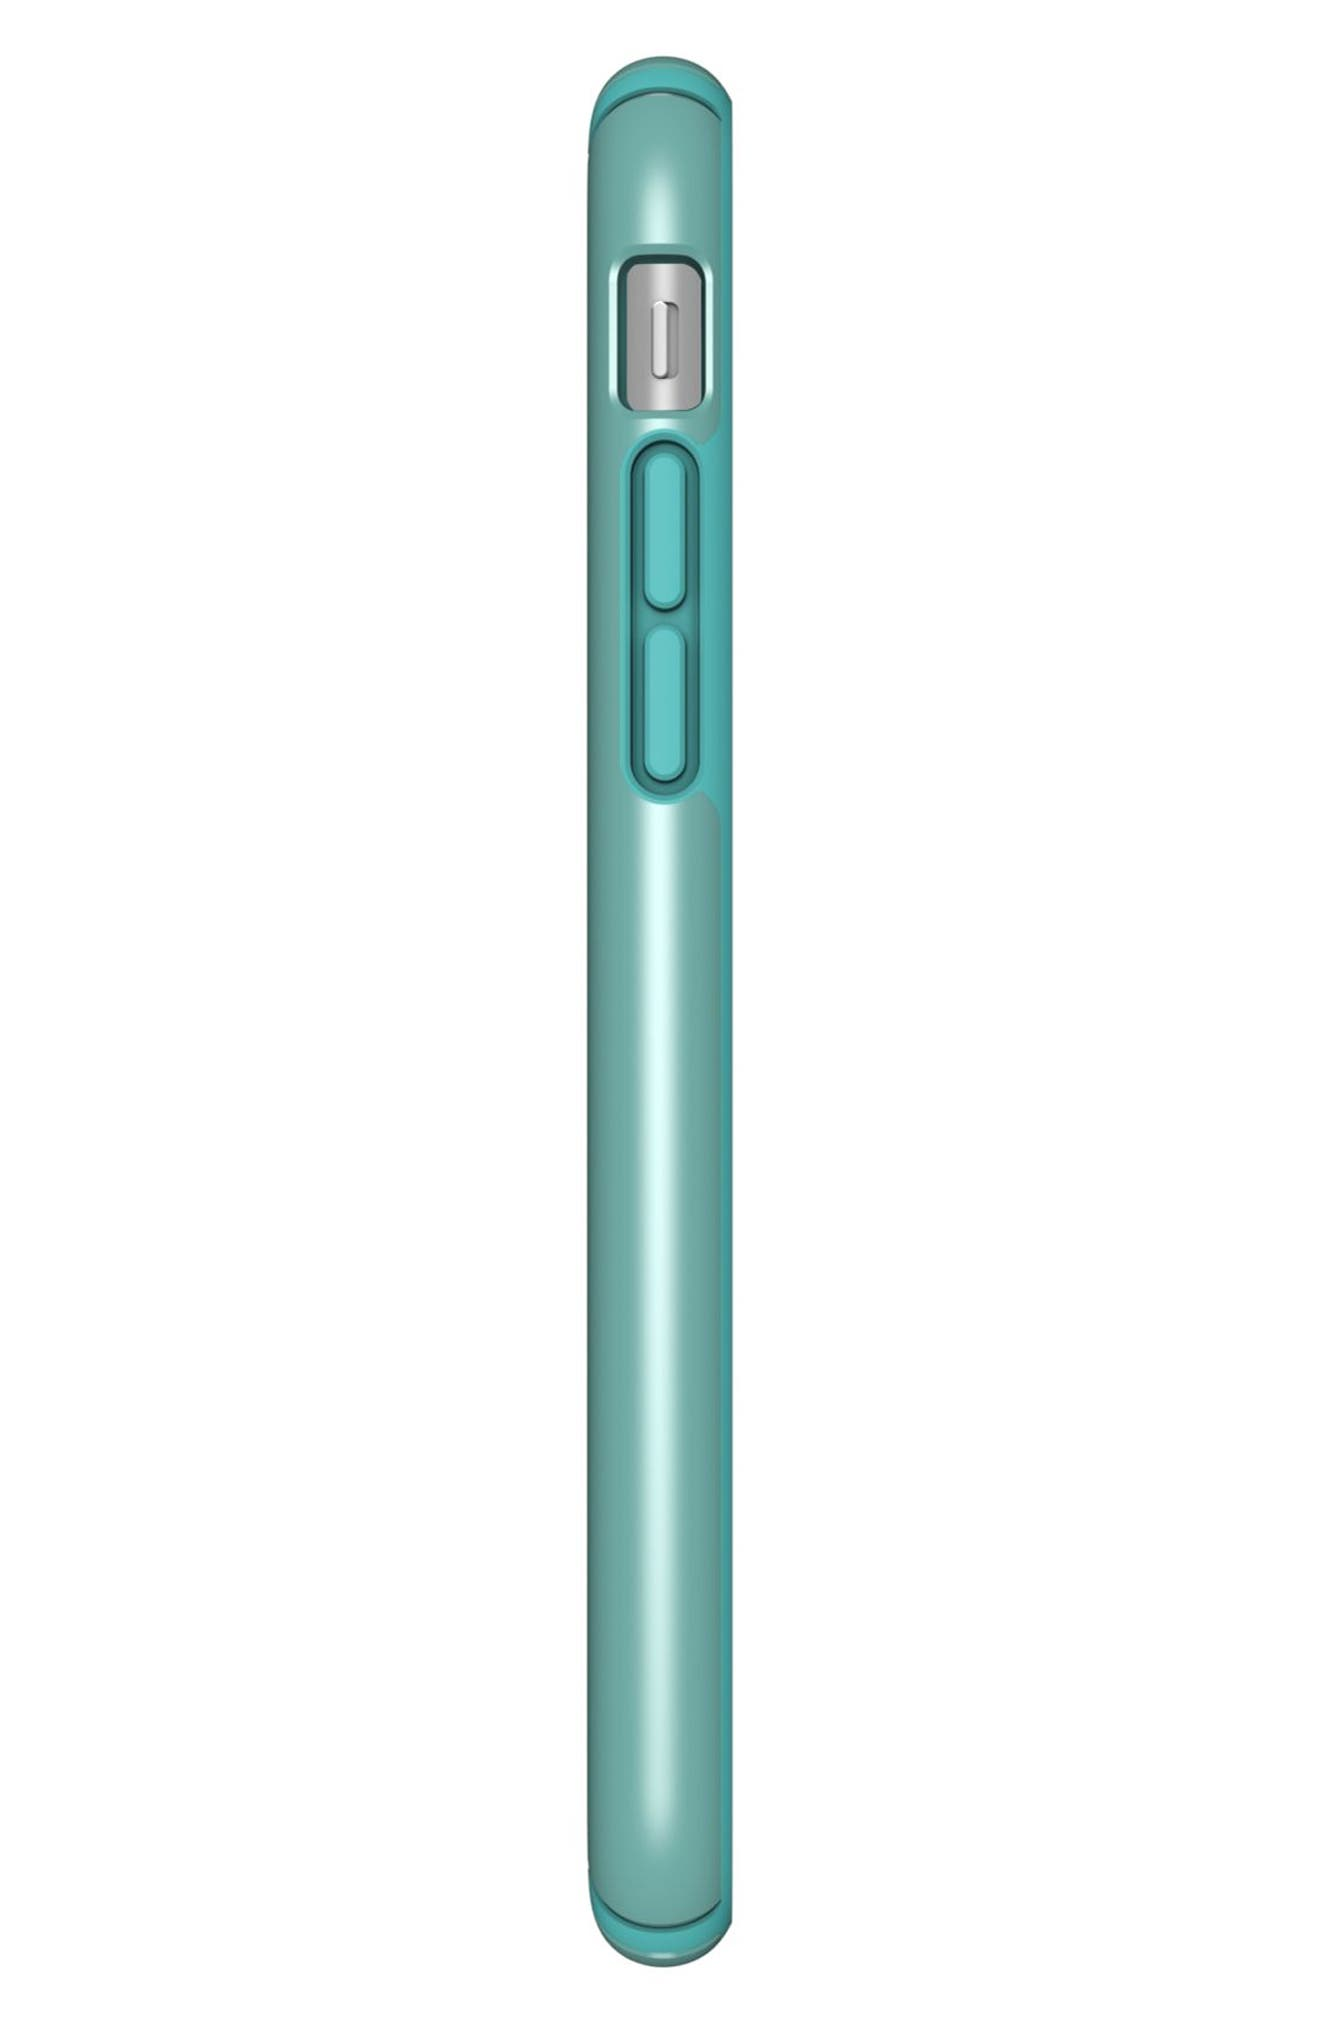 iPhone 6/6s/7/8 Case,                             Alternate thumbnail 5, color,                             Peppermint Green/ Teal